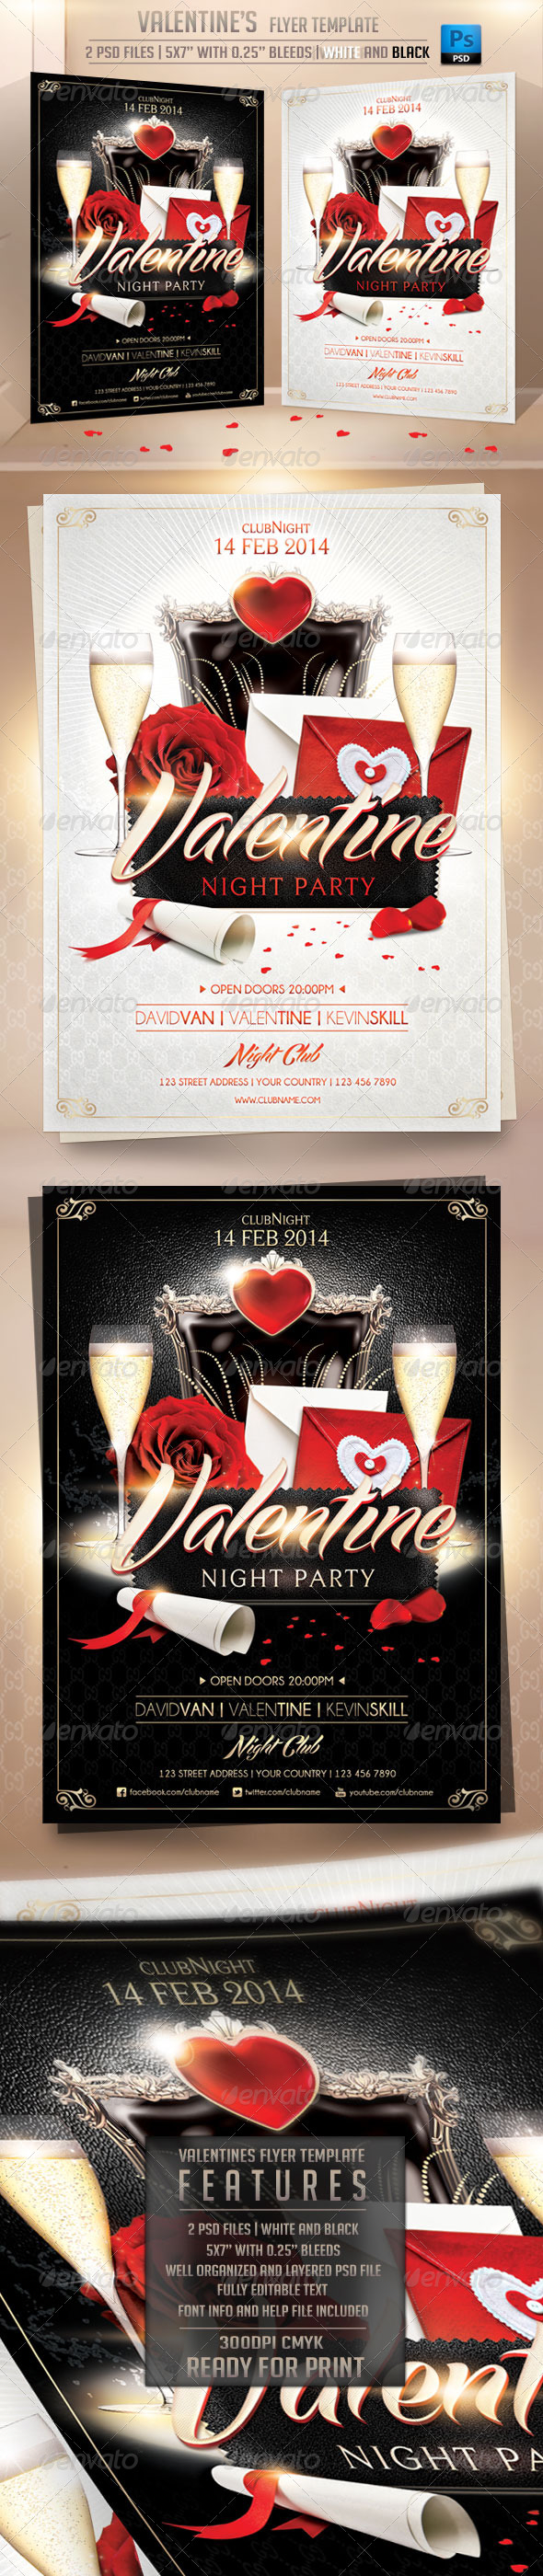 GraphicRiver Valentines Flyer Template 6531495